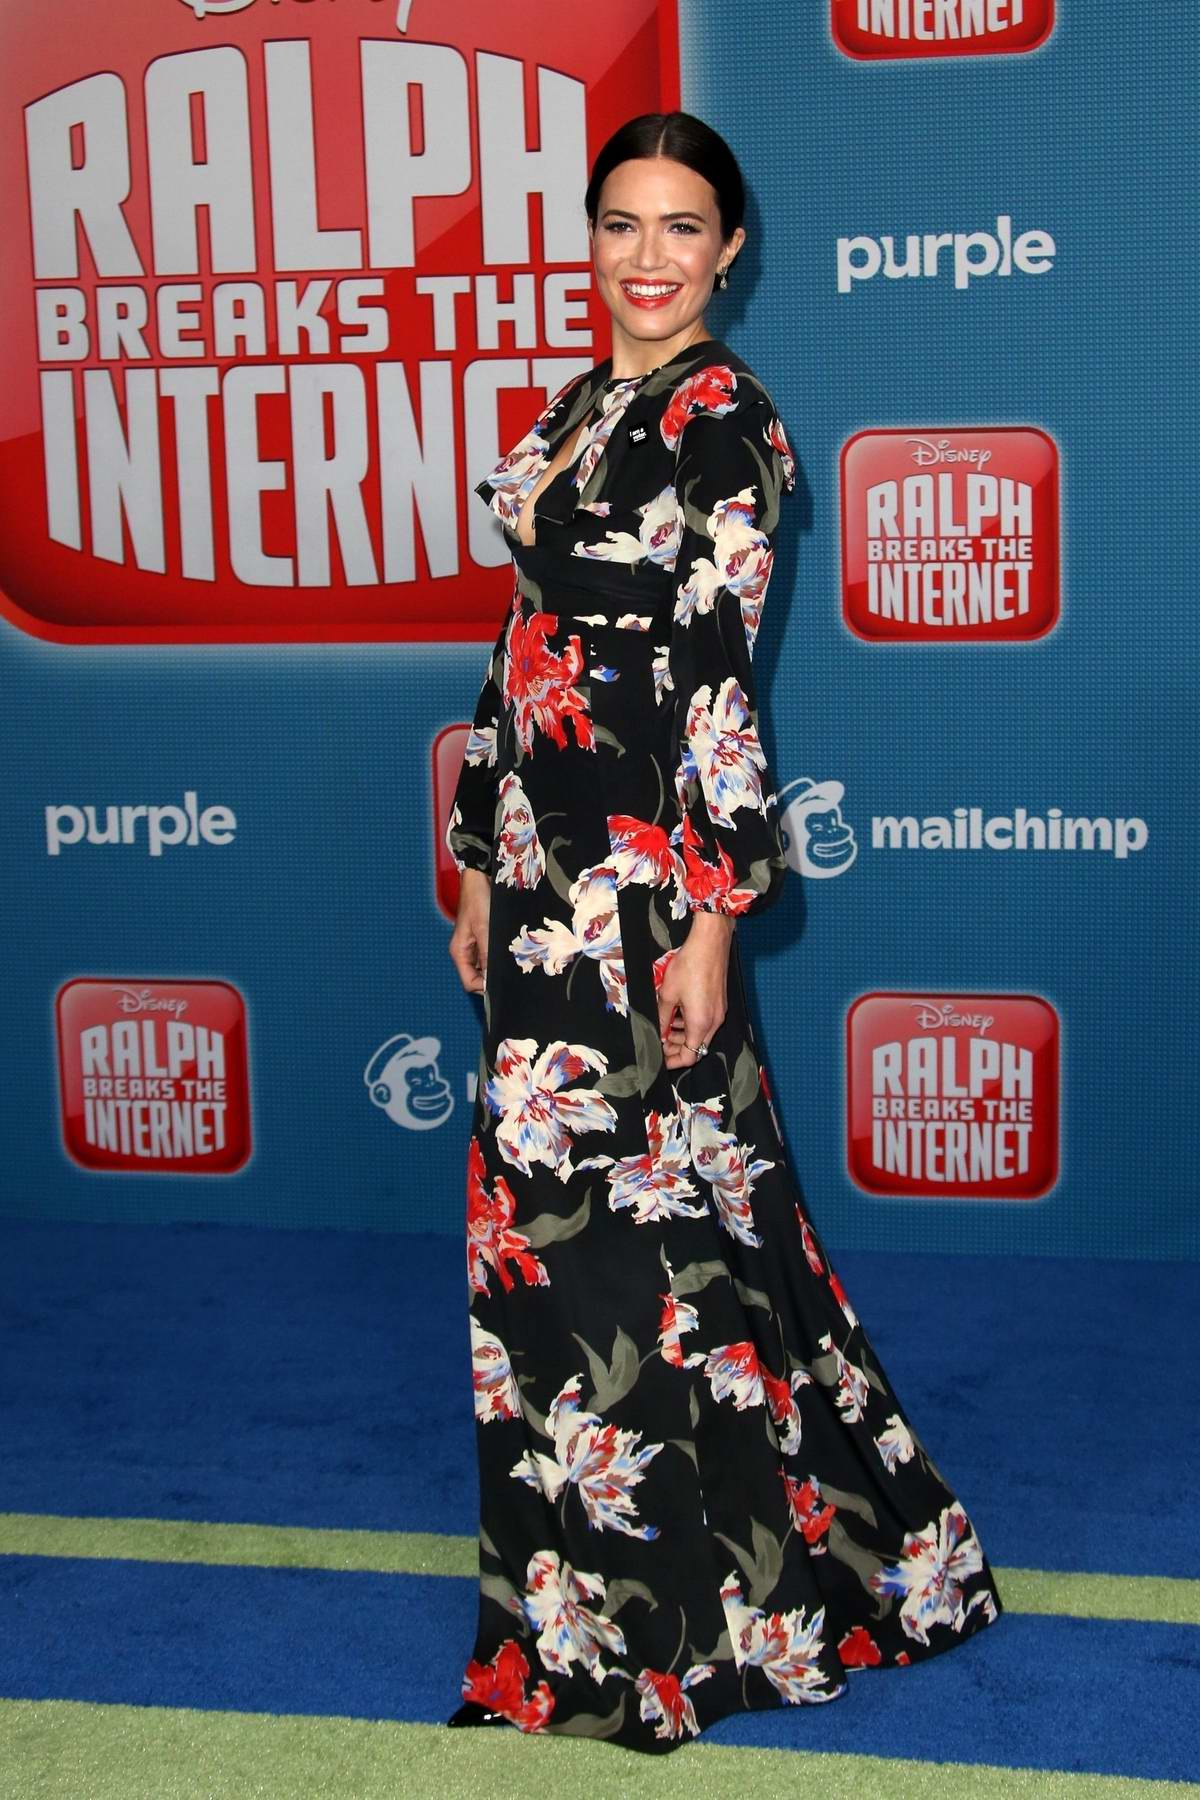 Mandy Moore attends the premiere of 'Ralph Breaks The Internet' in Los Angeles